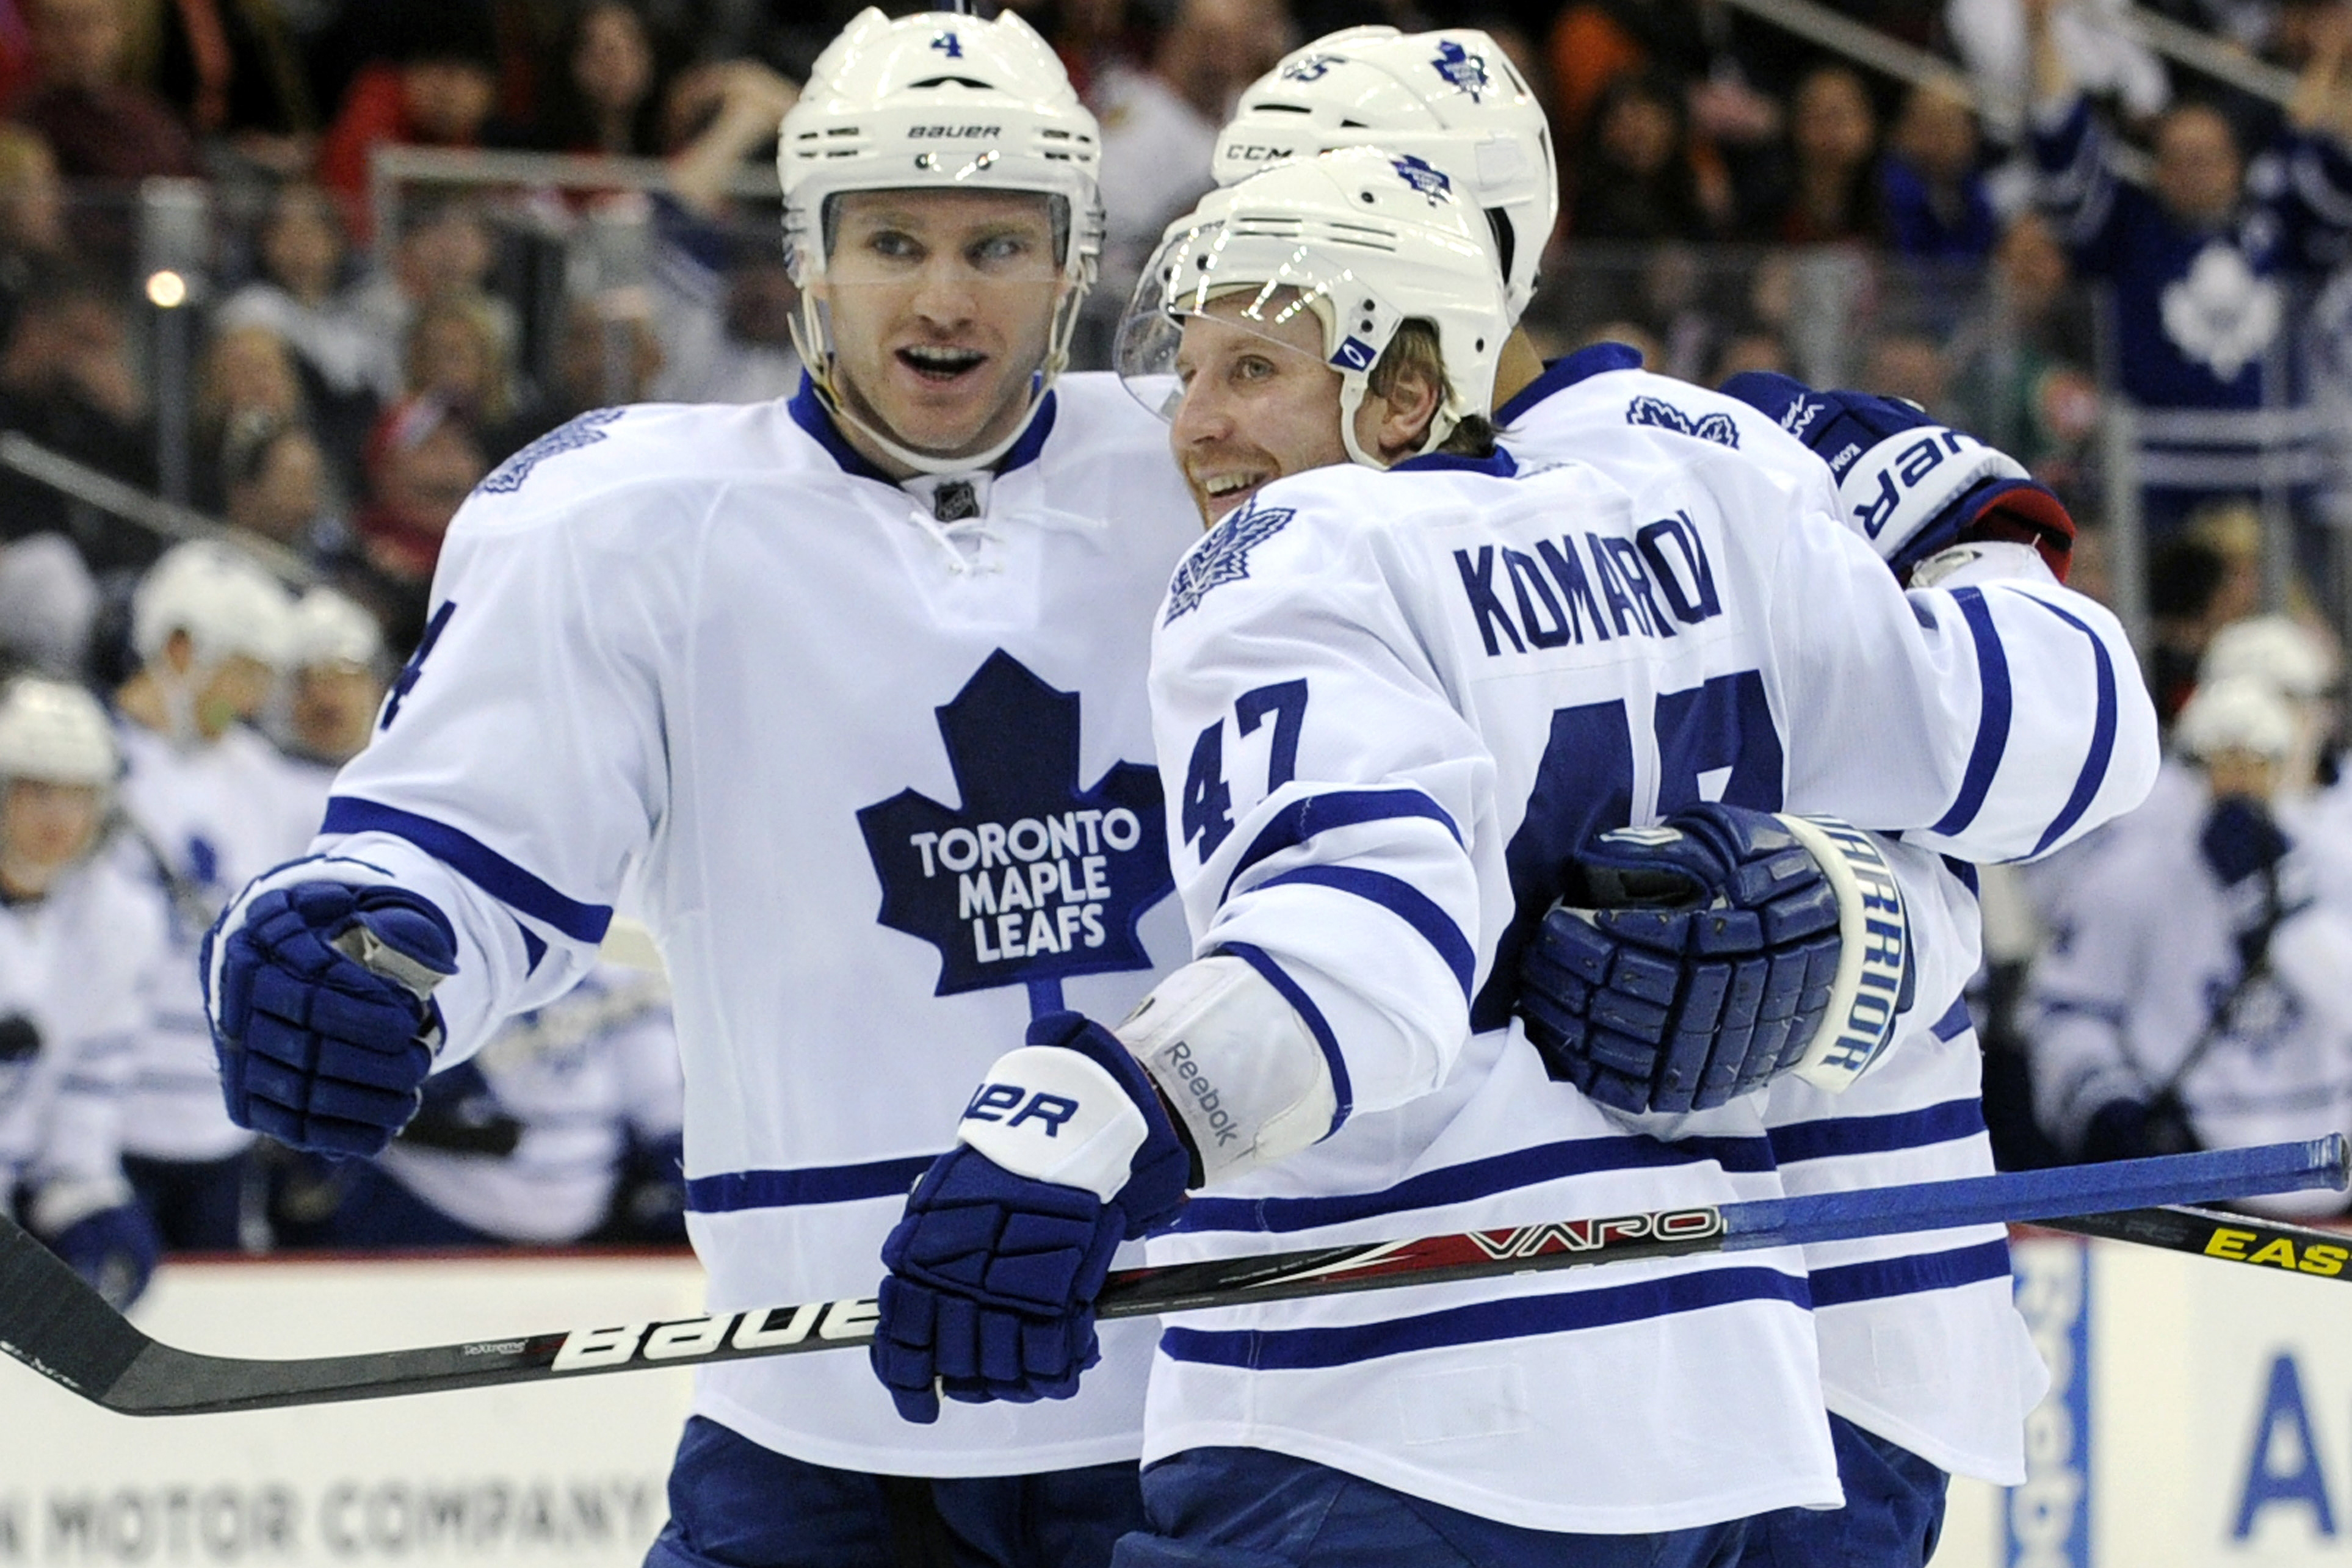 Toronto Maple Leafs could face Montreal in playoffs  Johnston a6371ddf5